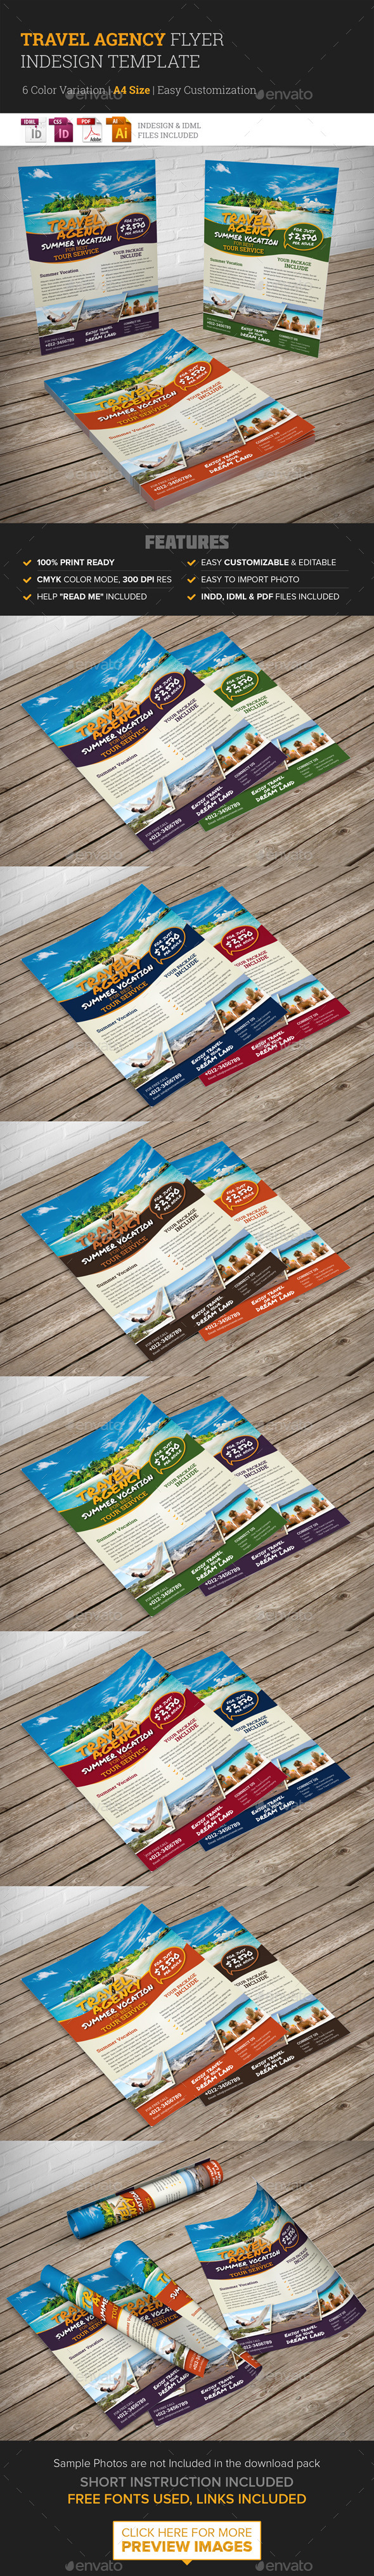 GraphicRiver Travel Agency Flyer Indesign Template 10243853